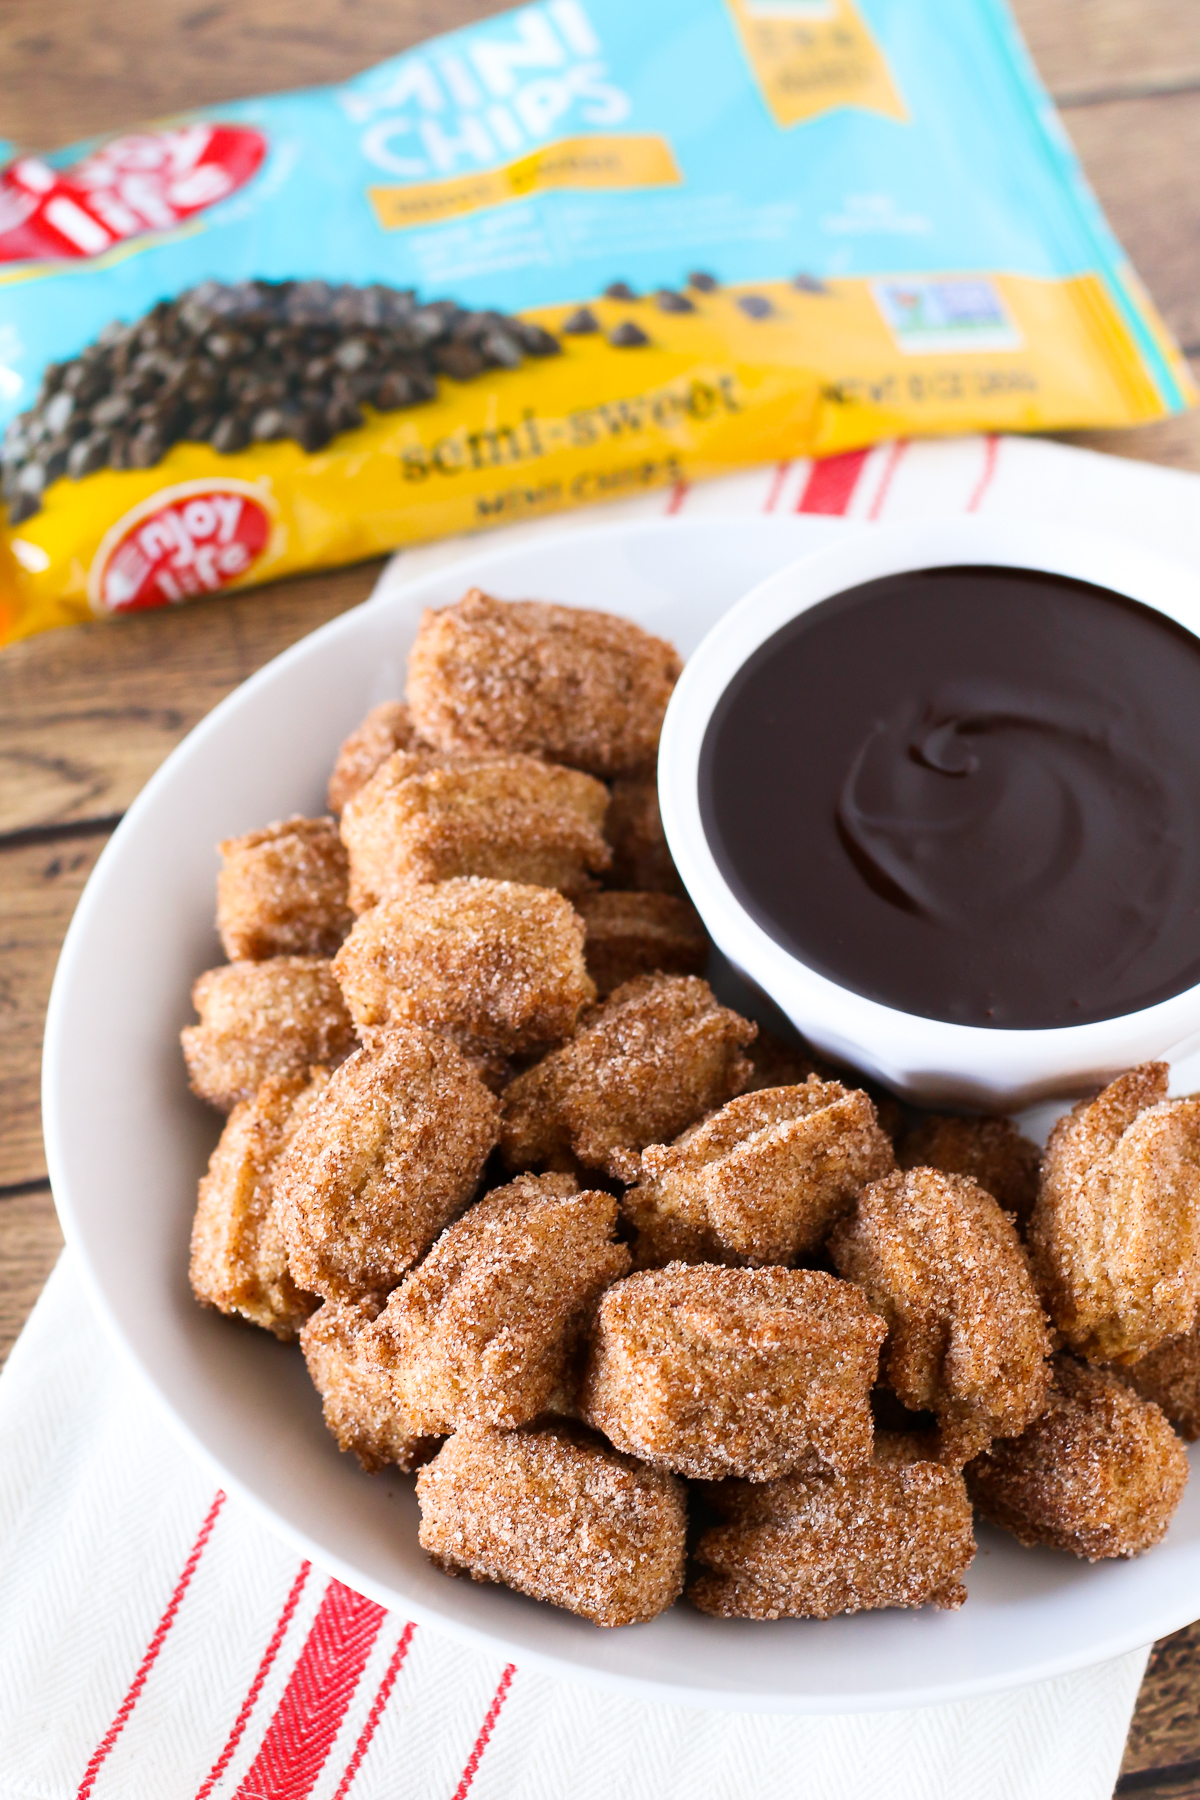 Gluten Free Vegan Churro Bites with Chocolate Sauce. Bite-size fried churros, served with a chocolate sauce made with Enjoy Life chocolate chips!